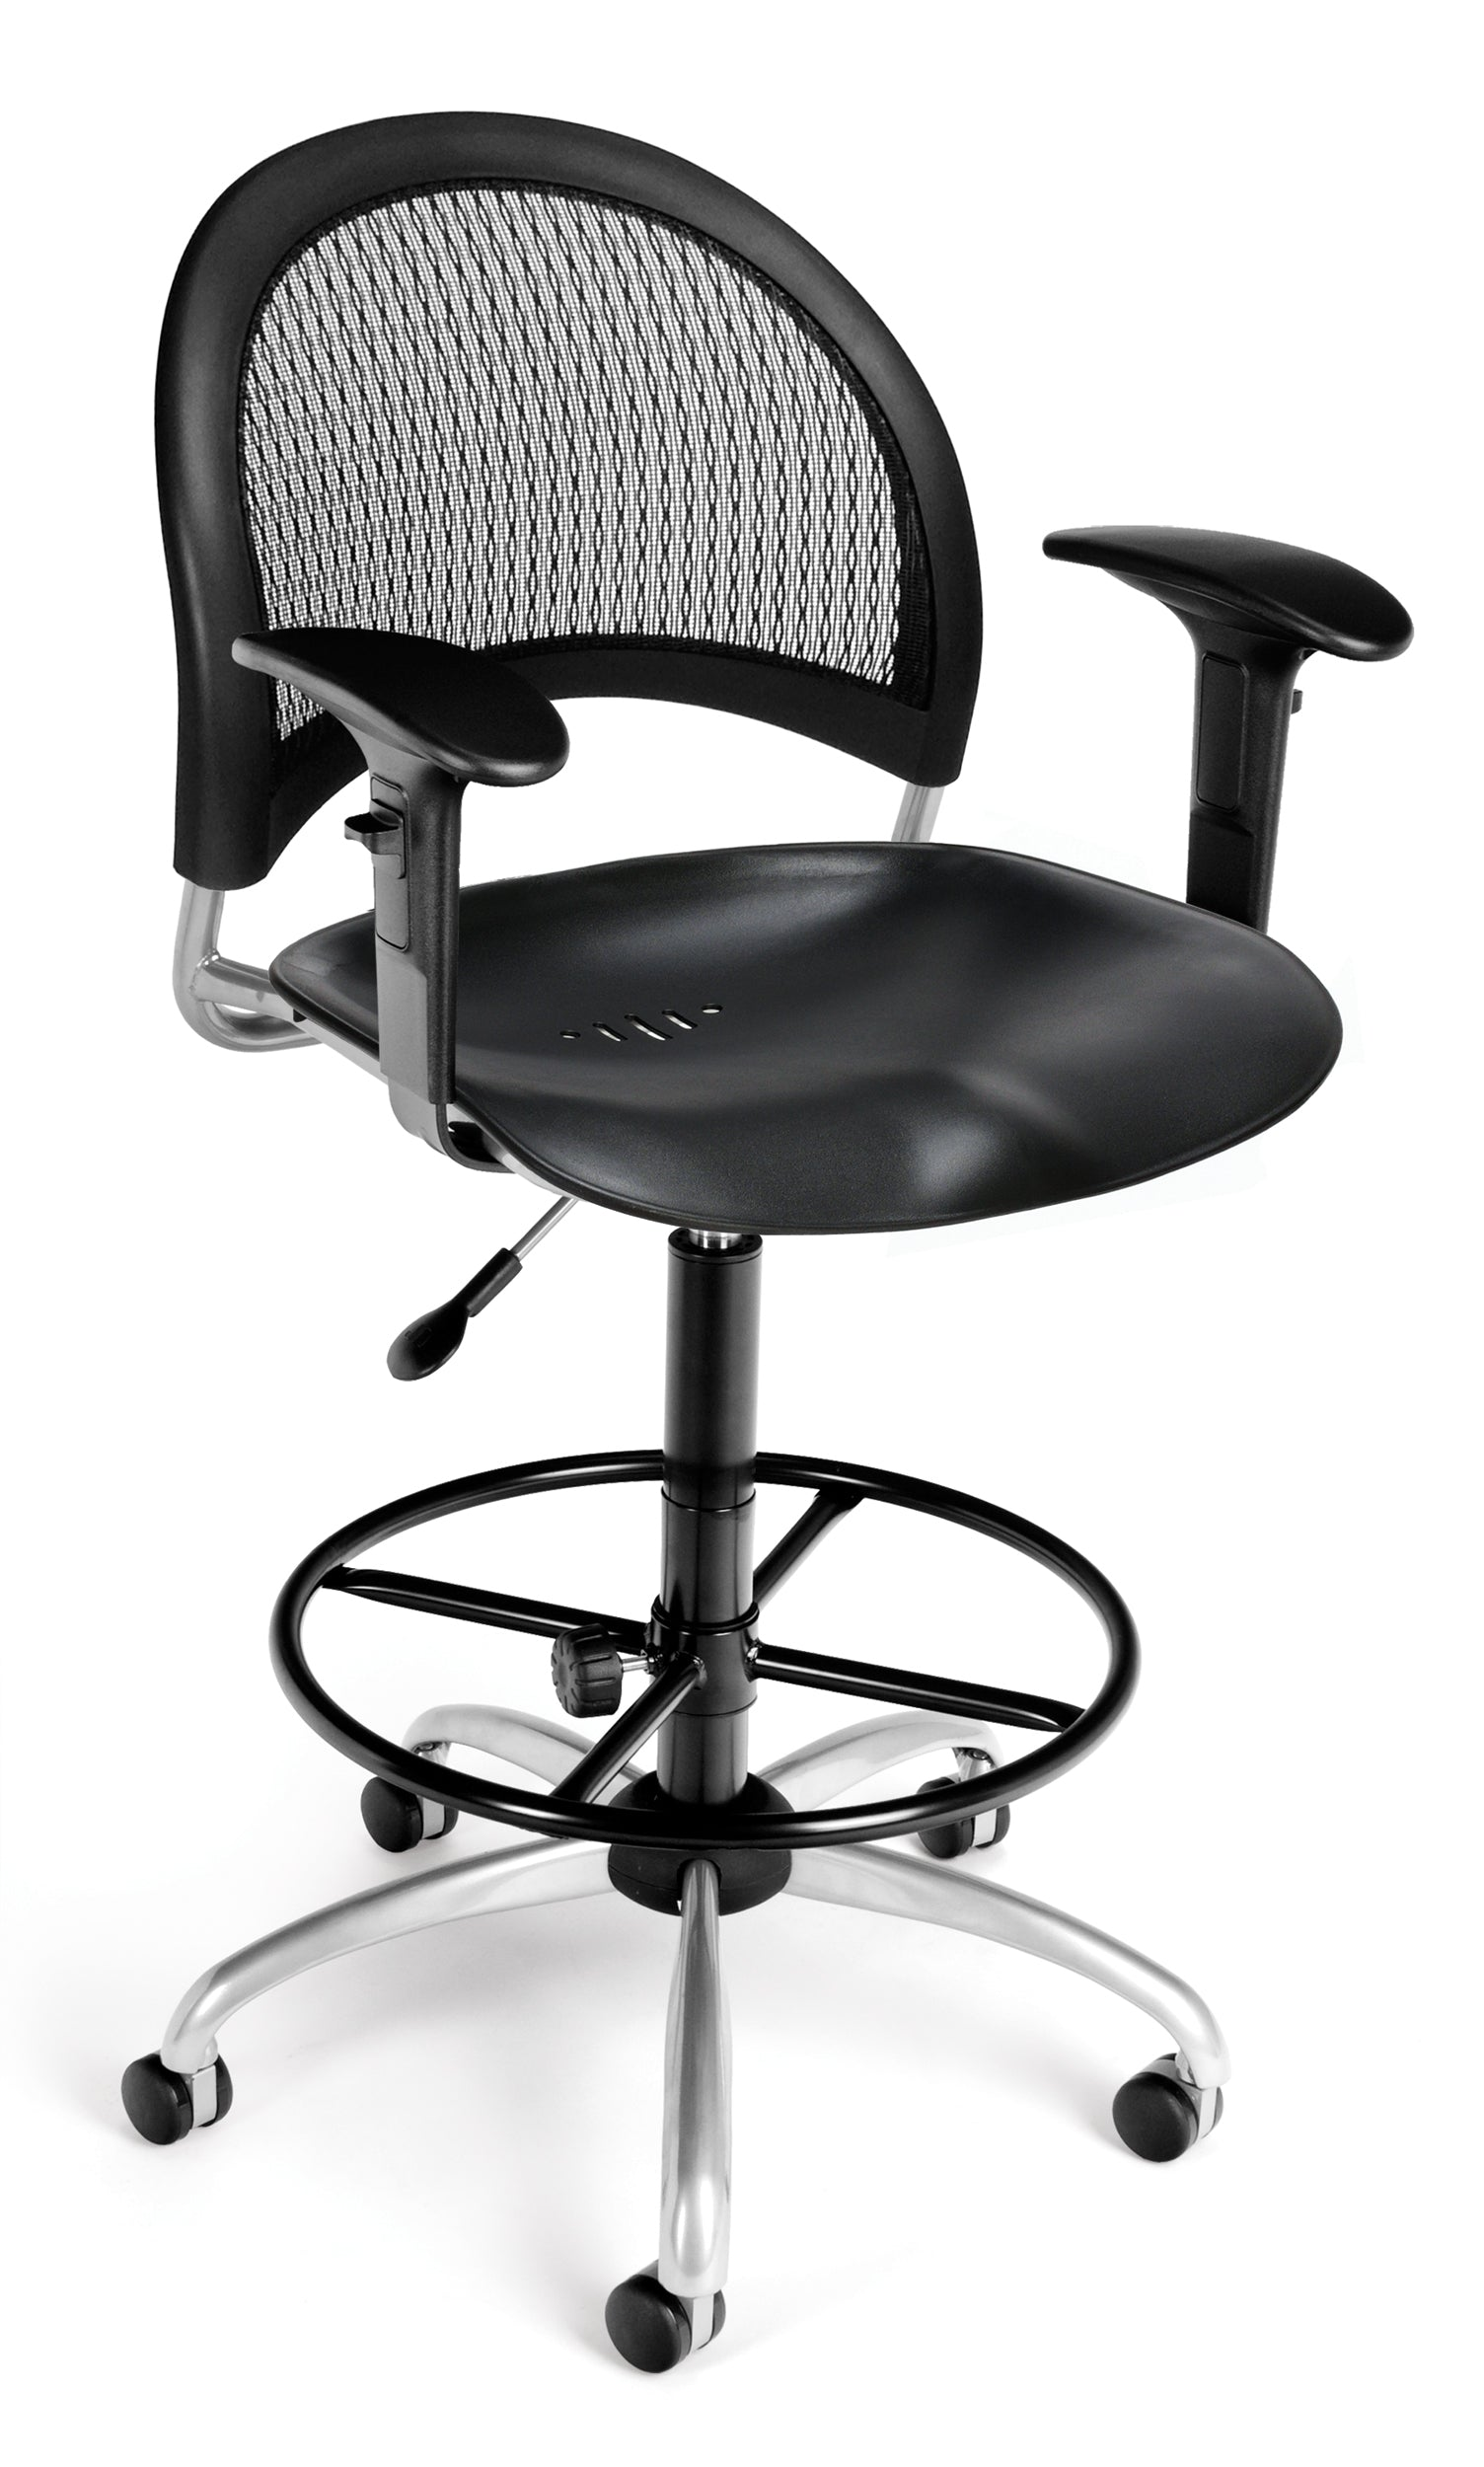 336-P-AA3DK Moon Series Plastic Swivel Chair with Arms & Drafting Kit